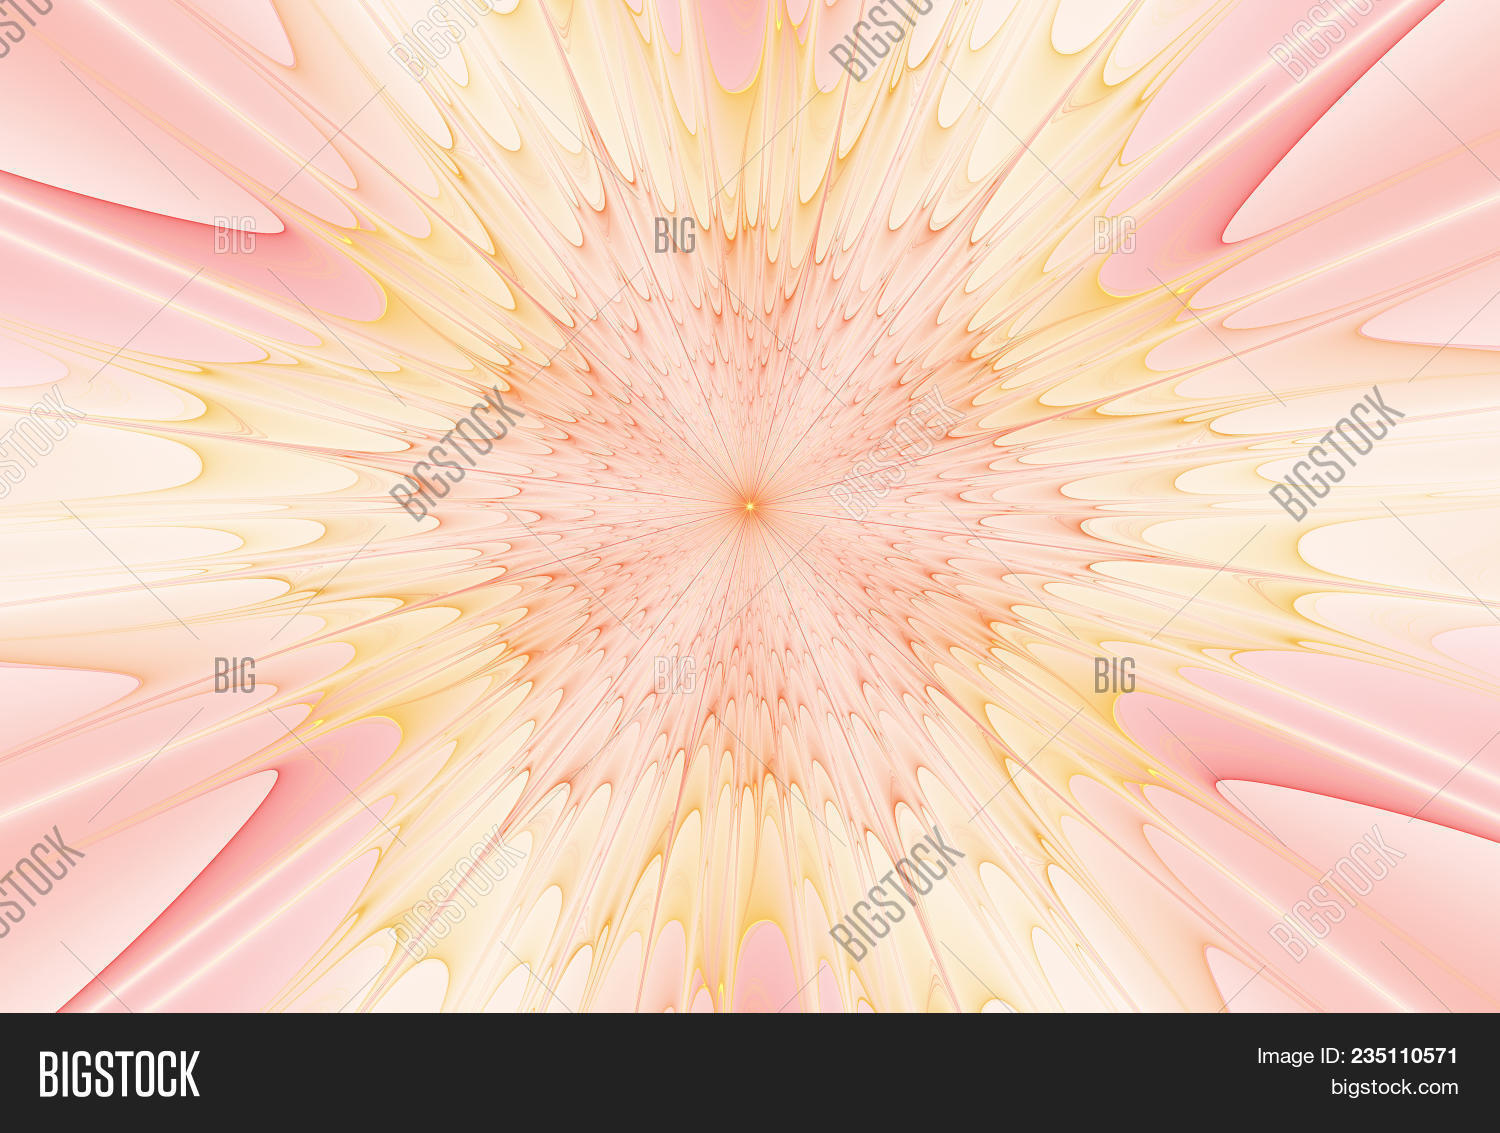 Beautiful Fractal Abstract Explosion Star Illustration Red And Yellow Background Fractal Explos 235110571 Image Stock Photo